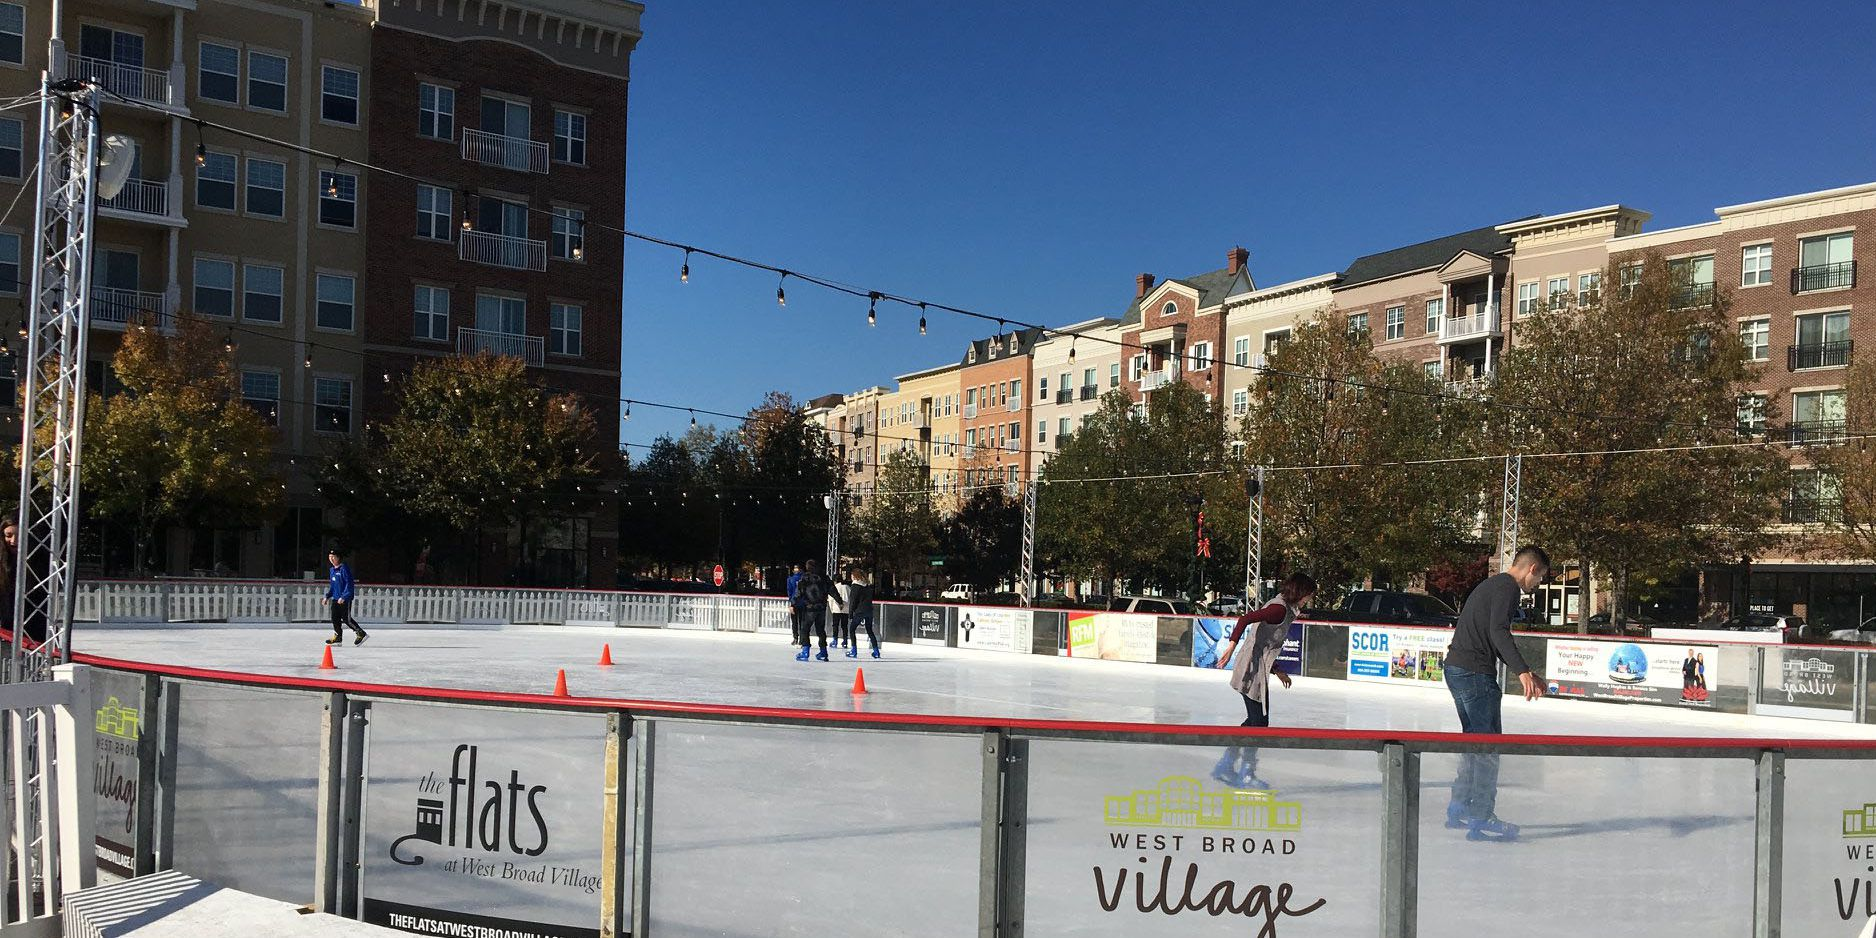 Ice rink at West Broad Village opens Friday